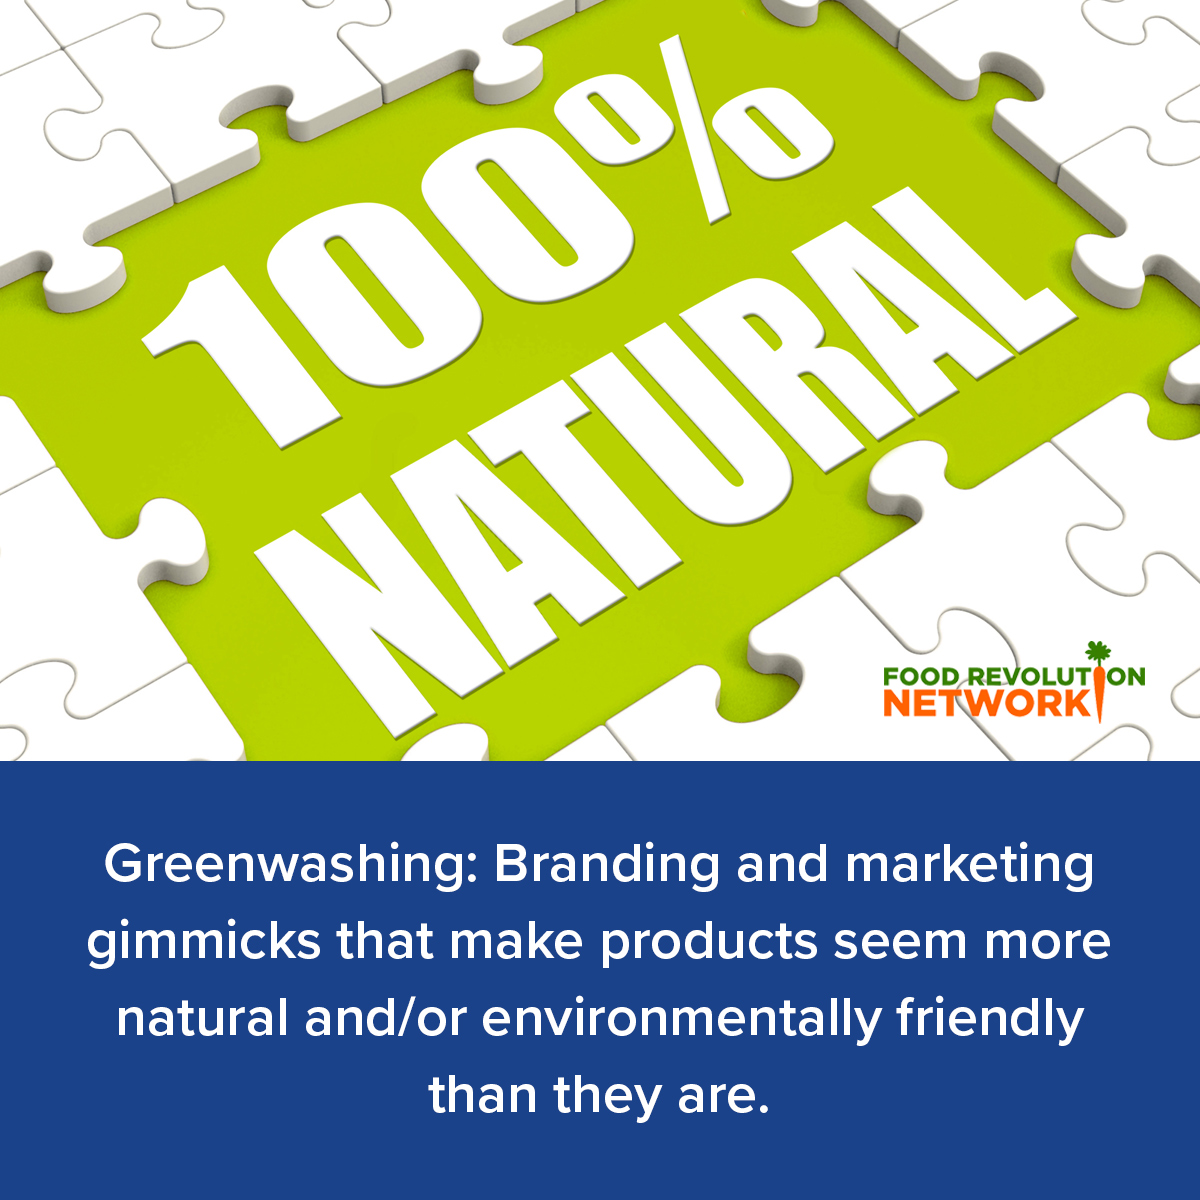 Greenwashing: Branding and marketing gimmicks that make products seem more natural and/or environmentally friendly than they are.